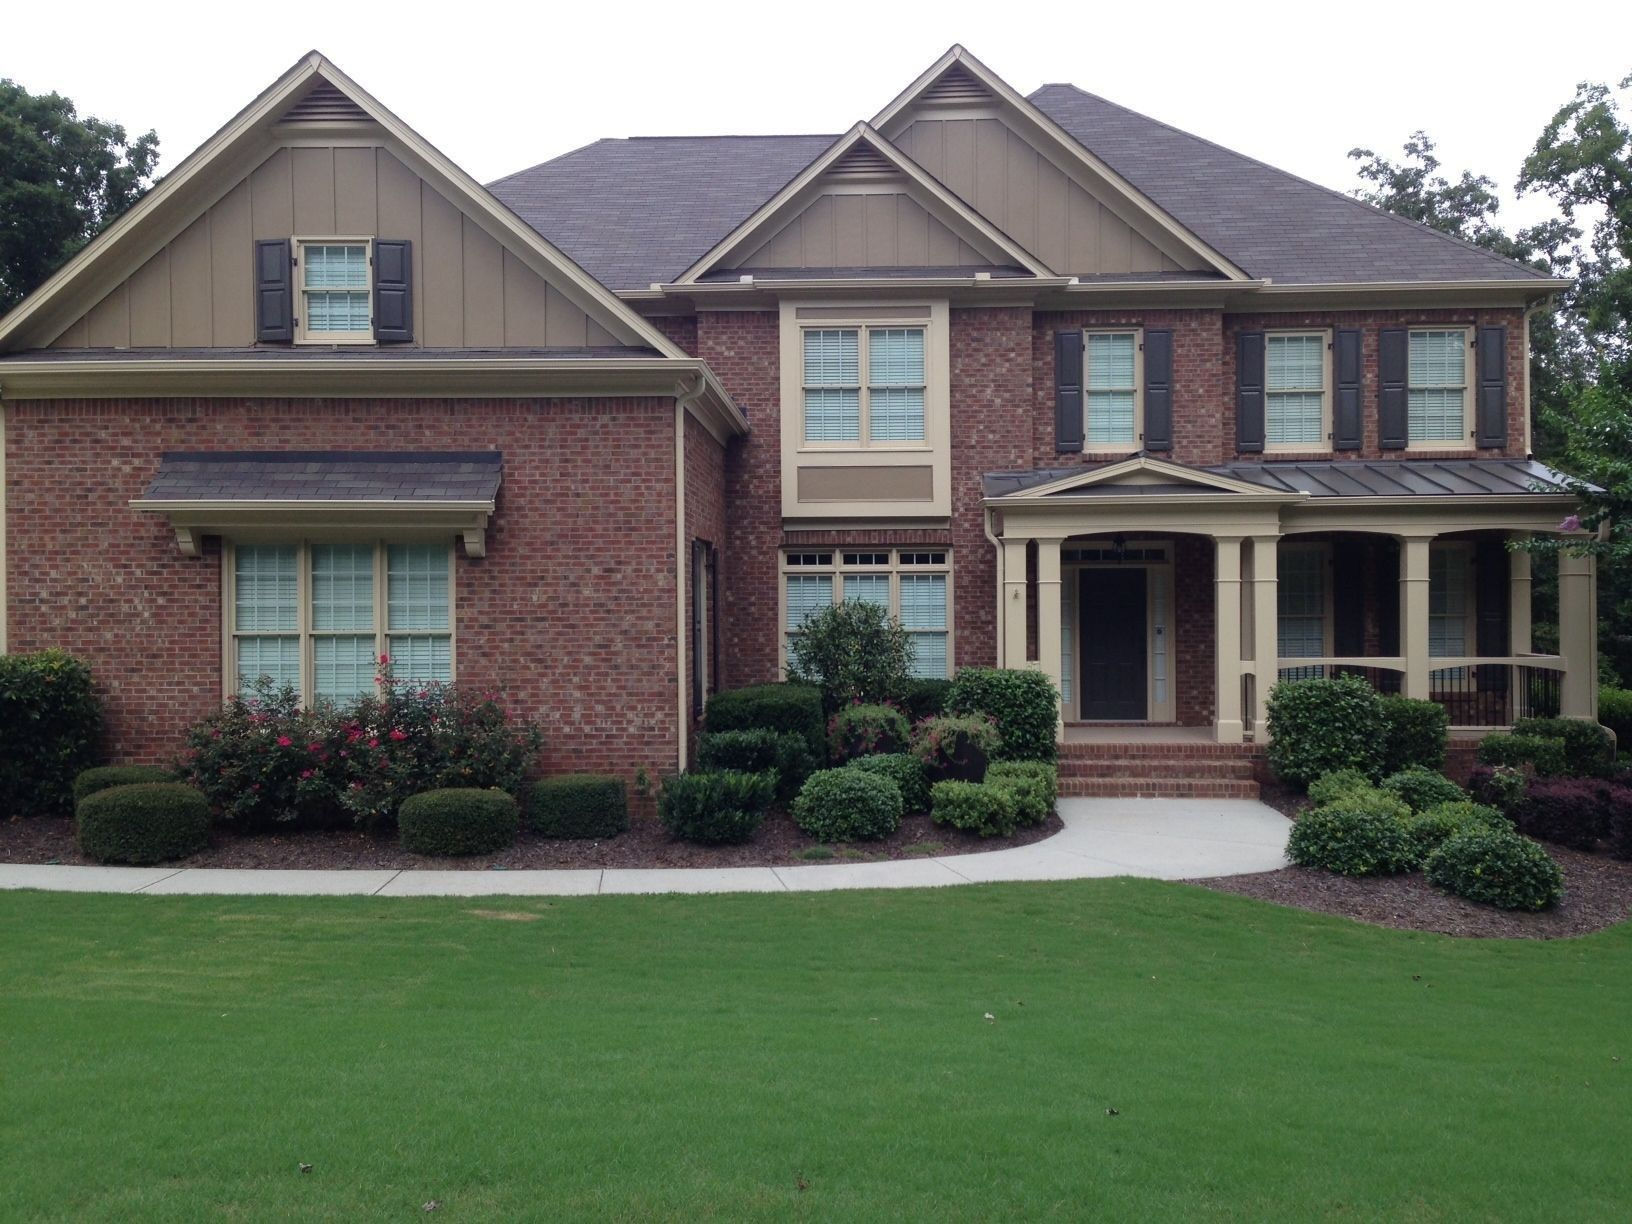 53 Exterior Paint Colors For House With Brown Roof Red Brick